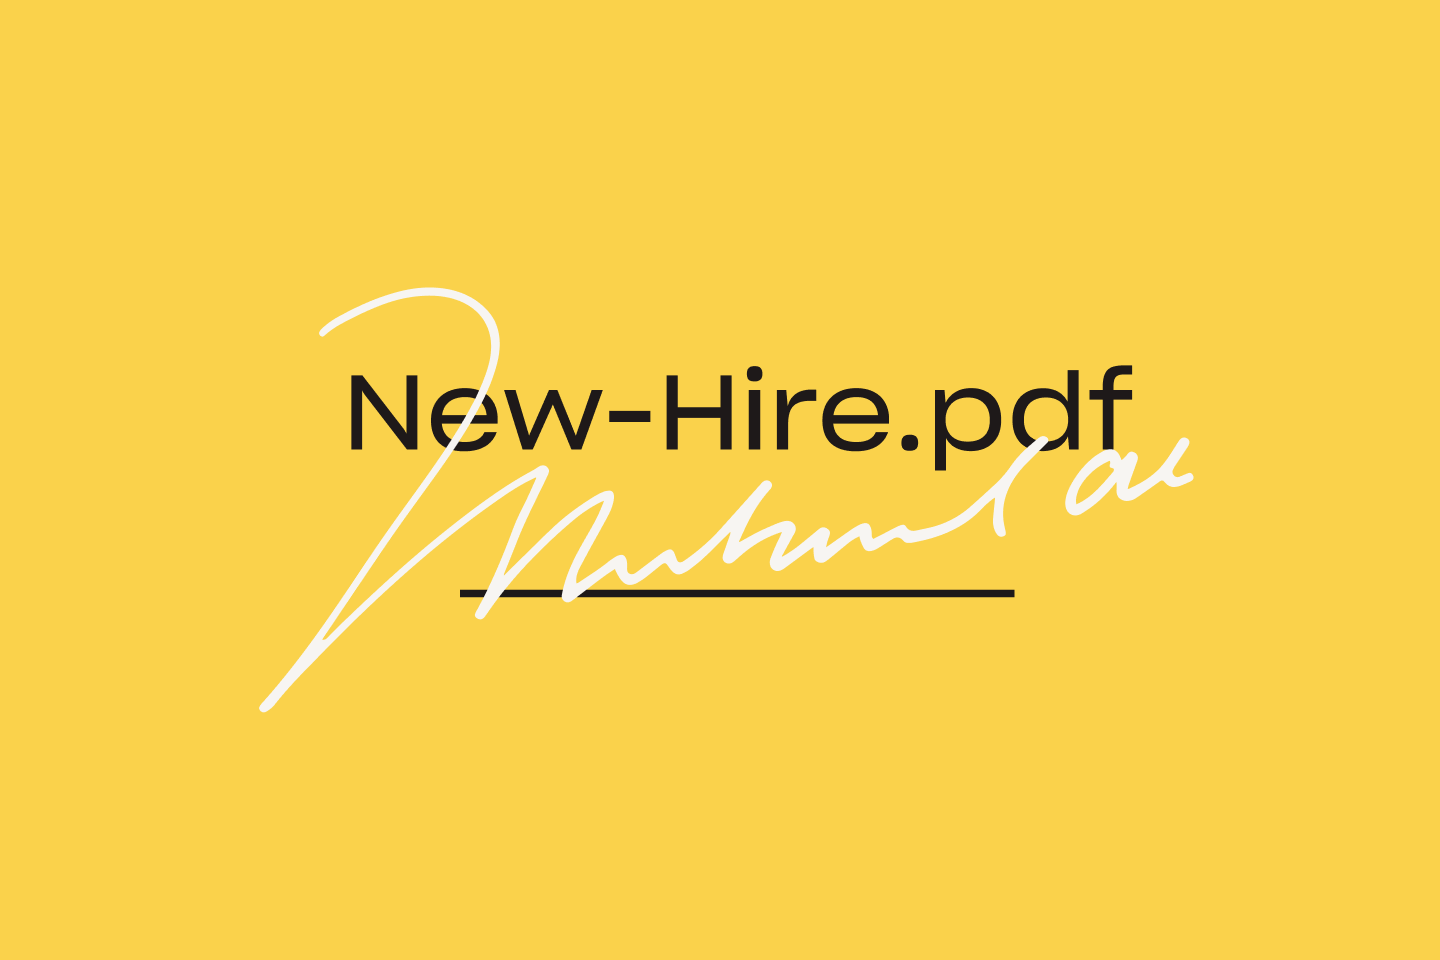 A new hire pdf is signed with an eSignature